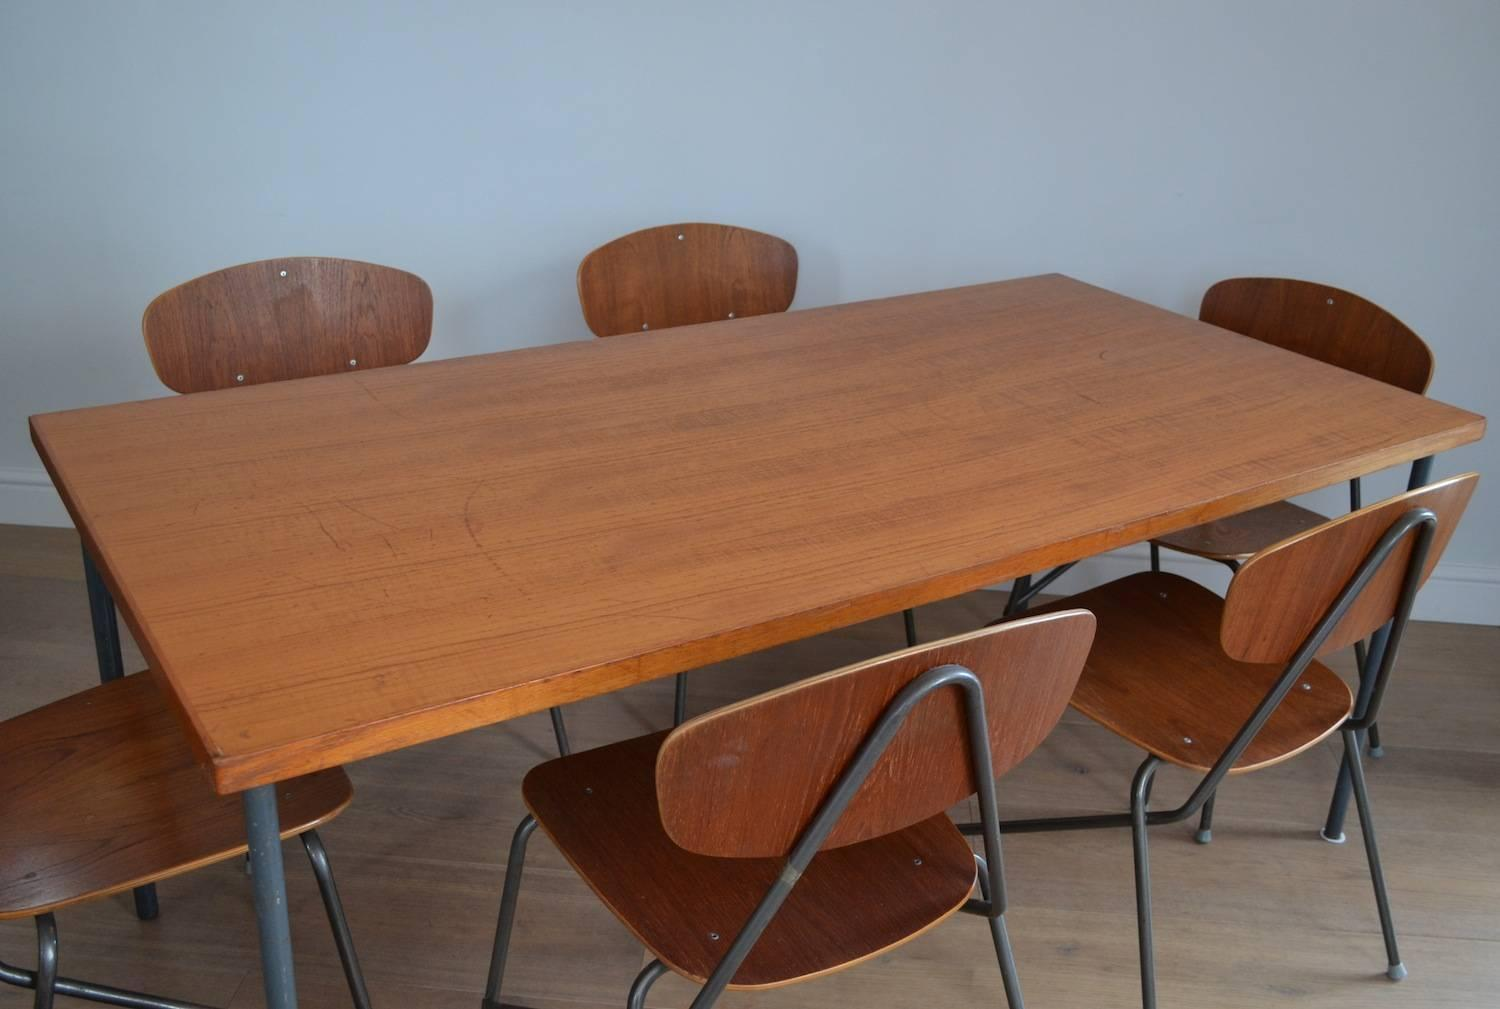 industrial dining table and chairs vintage convertible high chair remploy six stacking